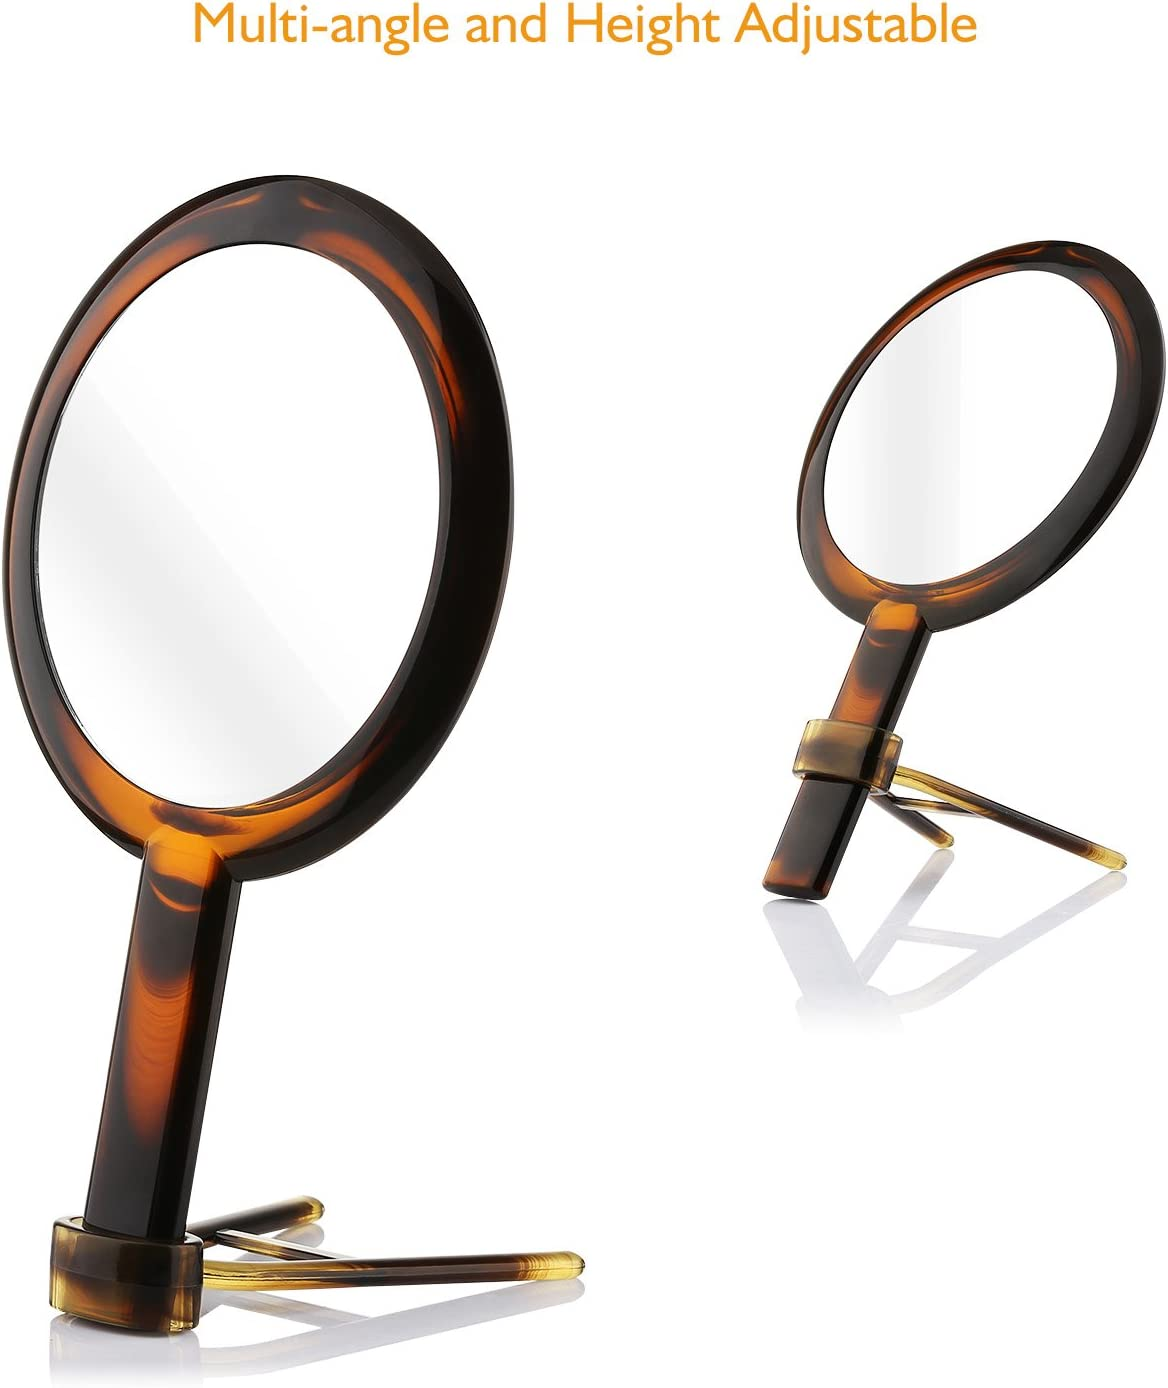 Beautifive Hand Mirror, Hand Held Mirrors with Adjustable Handle,1x/7x Magnifying Double Sided Handheld Makeup Mirror with Stand for Vanity Beauty Travel Table Desk Shaving Bathroom (AmberNEW): Furniture & Decor